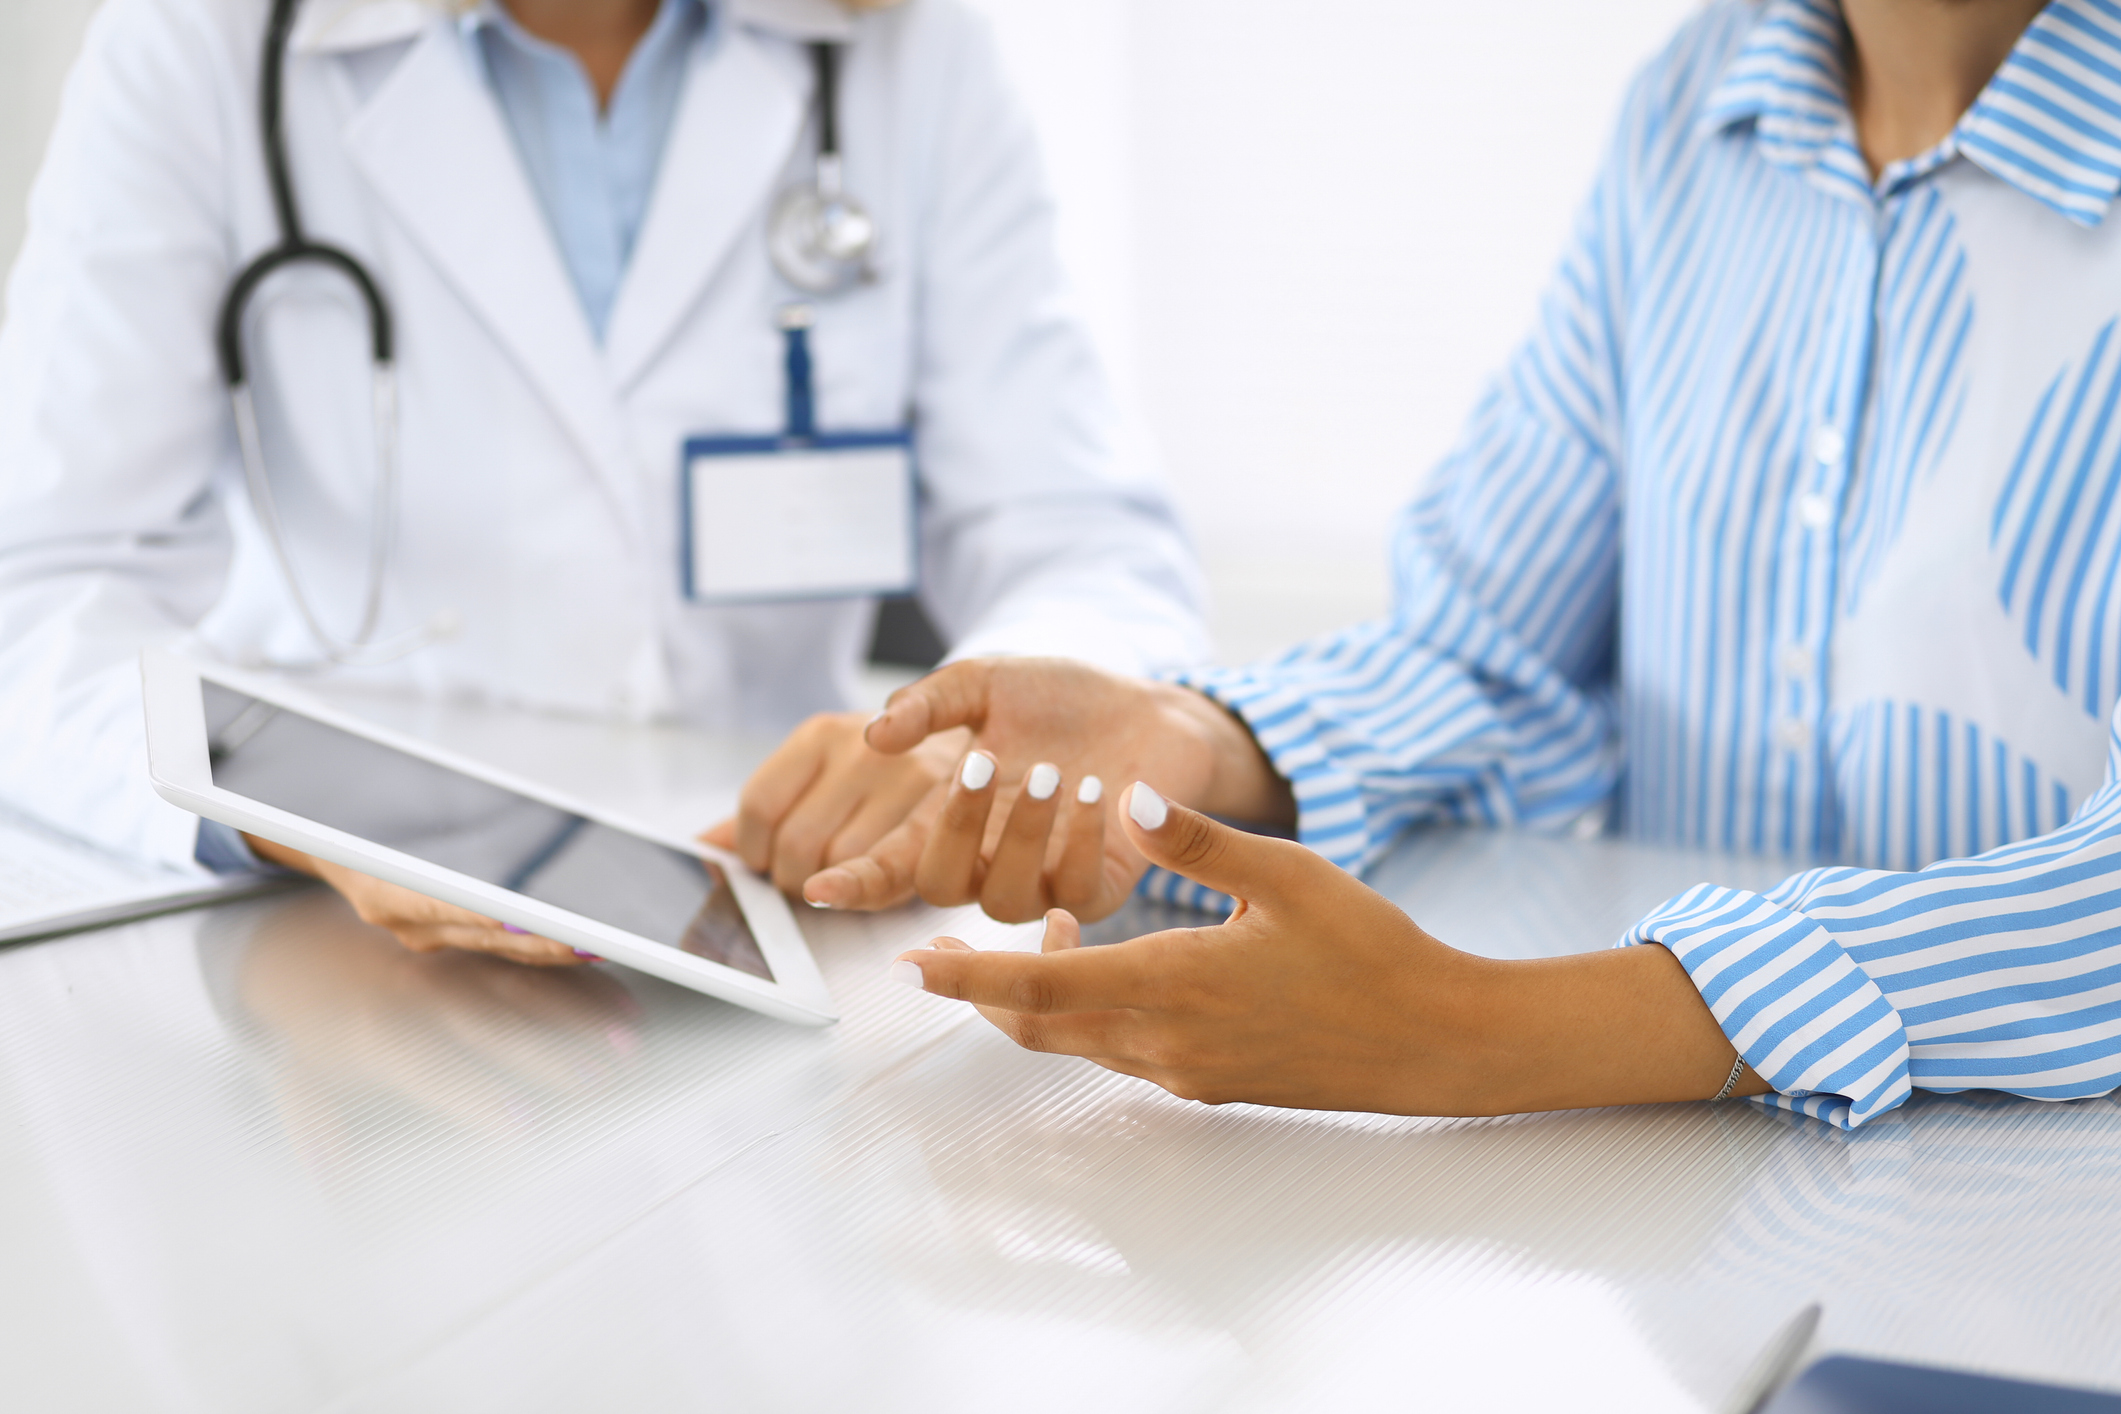 Hhs Is Seeking To Open Up Patient Data Medstar Health Says It S Got Tools To Make Those Data Useful Fiercehealthcare